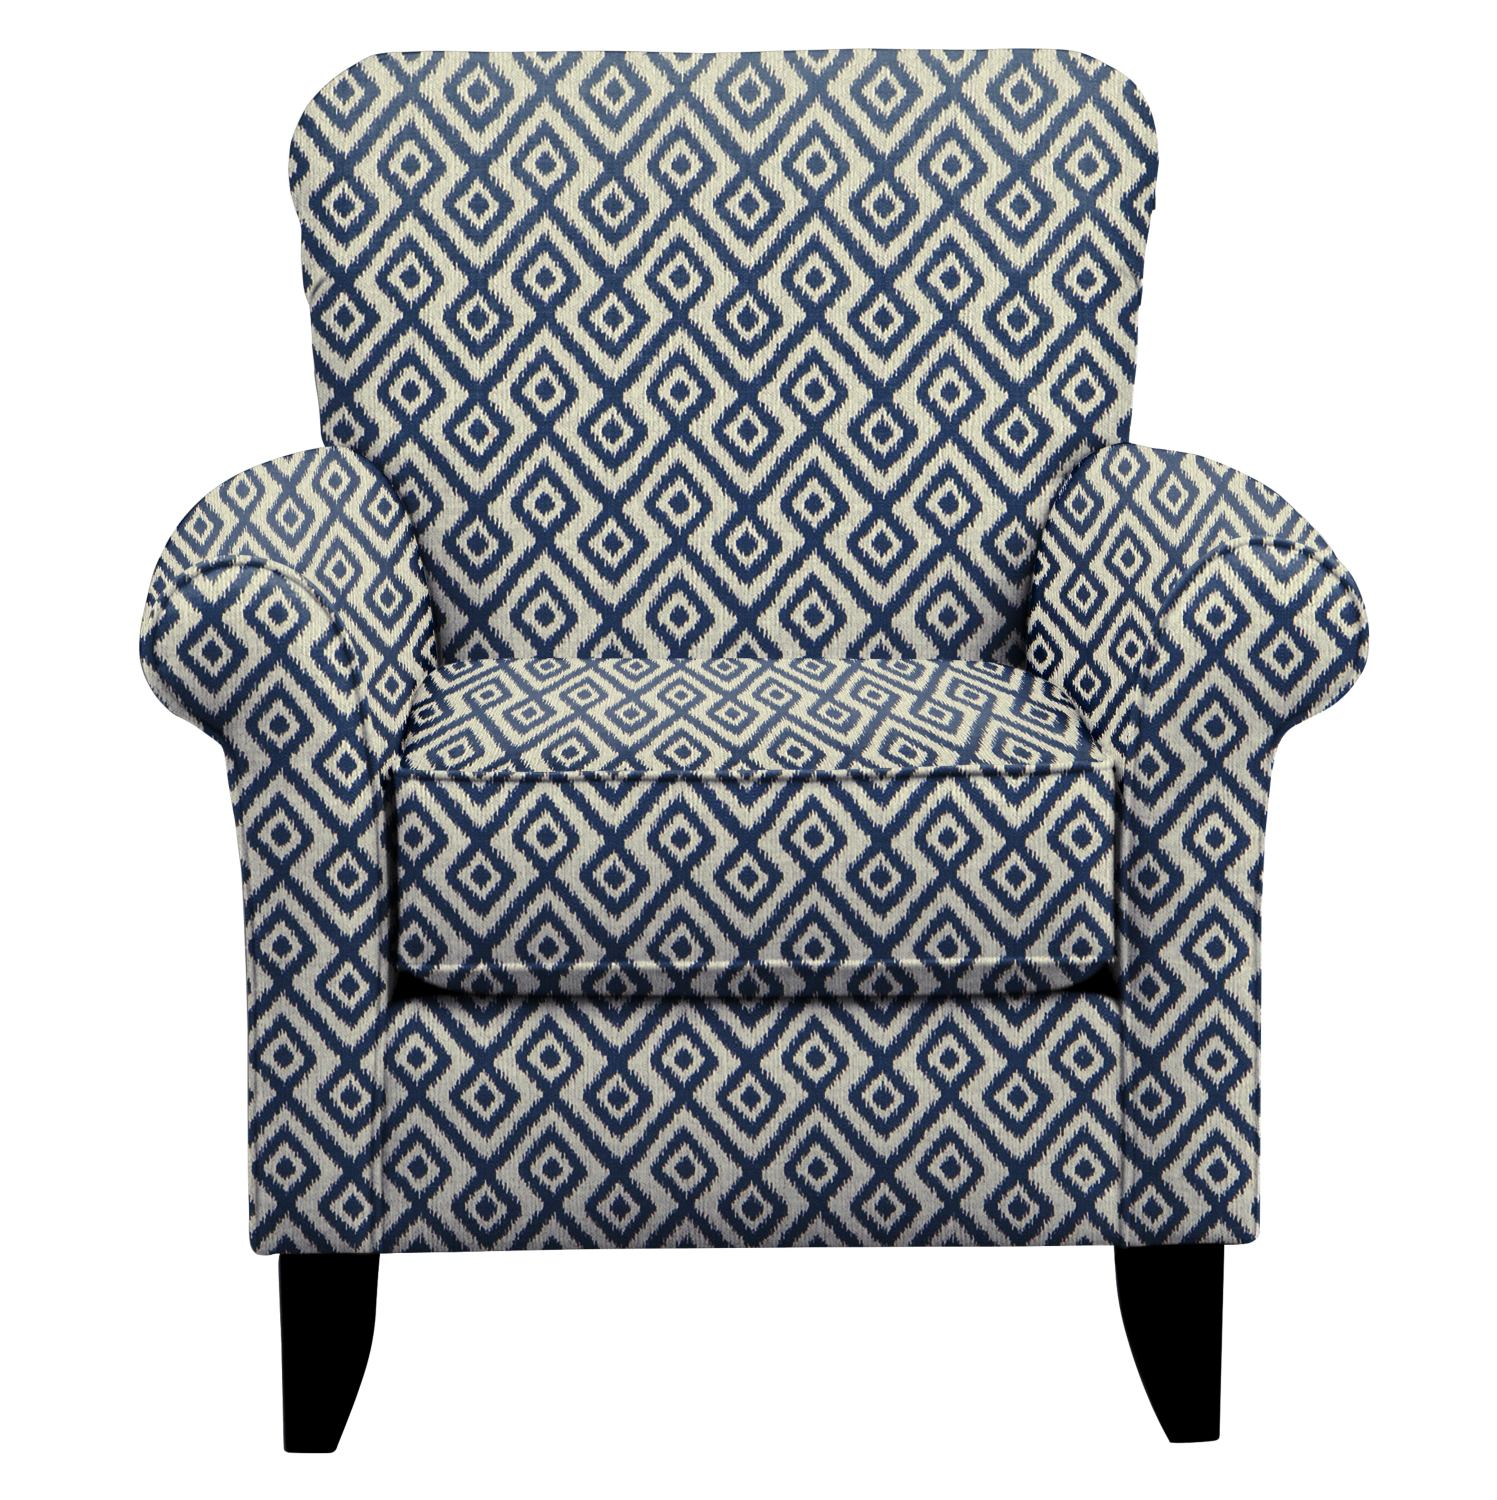 Living Room Furniture - Tracy Chair w/ Tate Indigo Fabric